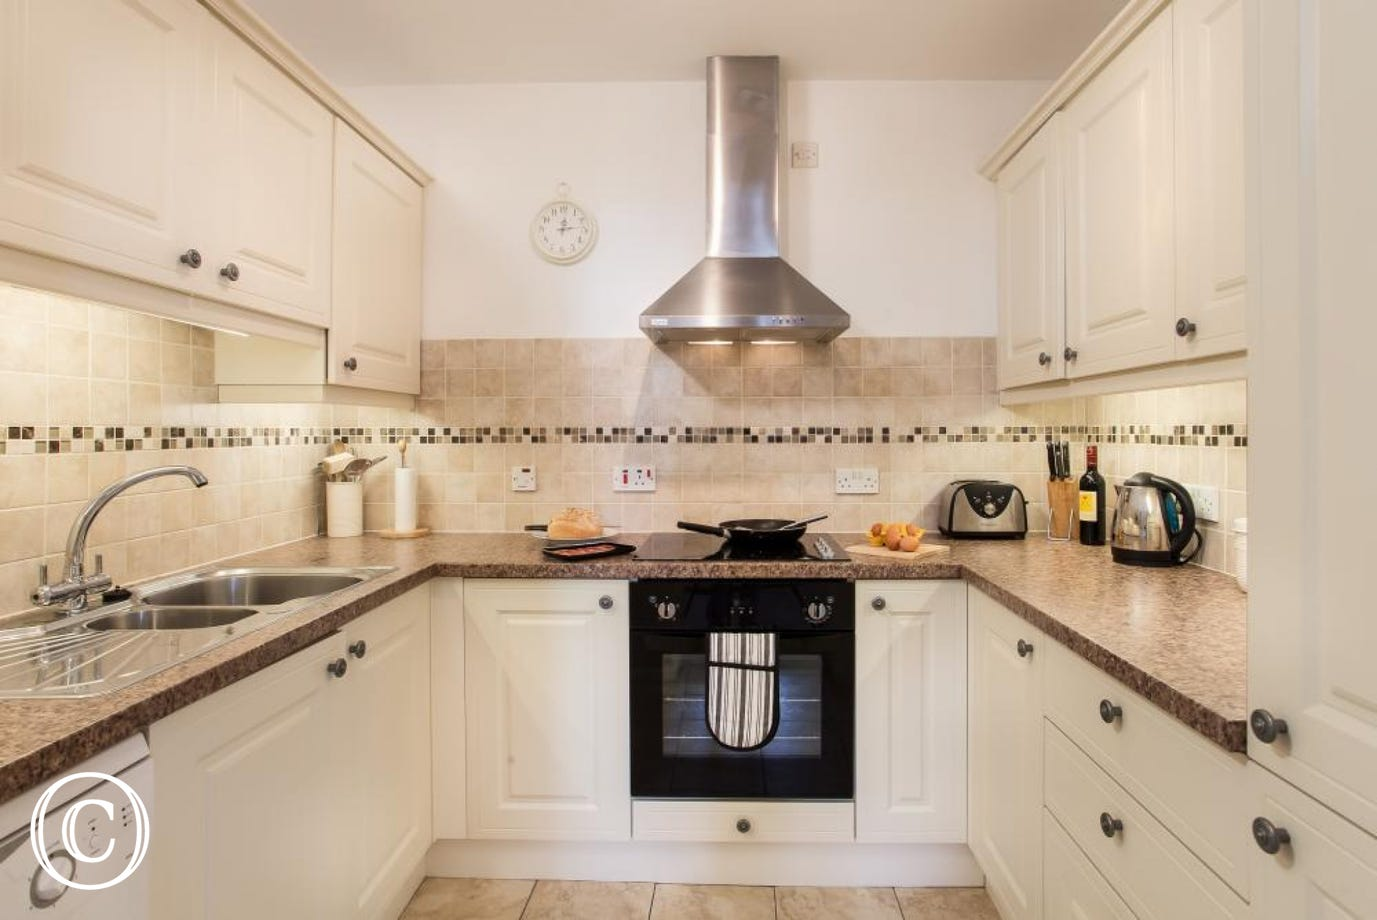 Meadfoot Beach Apartment, Torquay - Kitchen